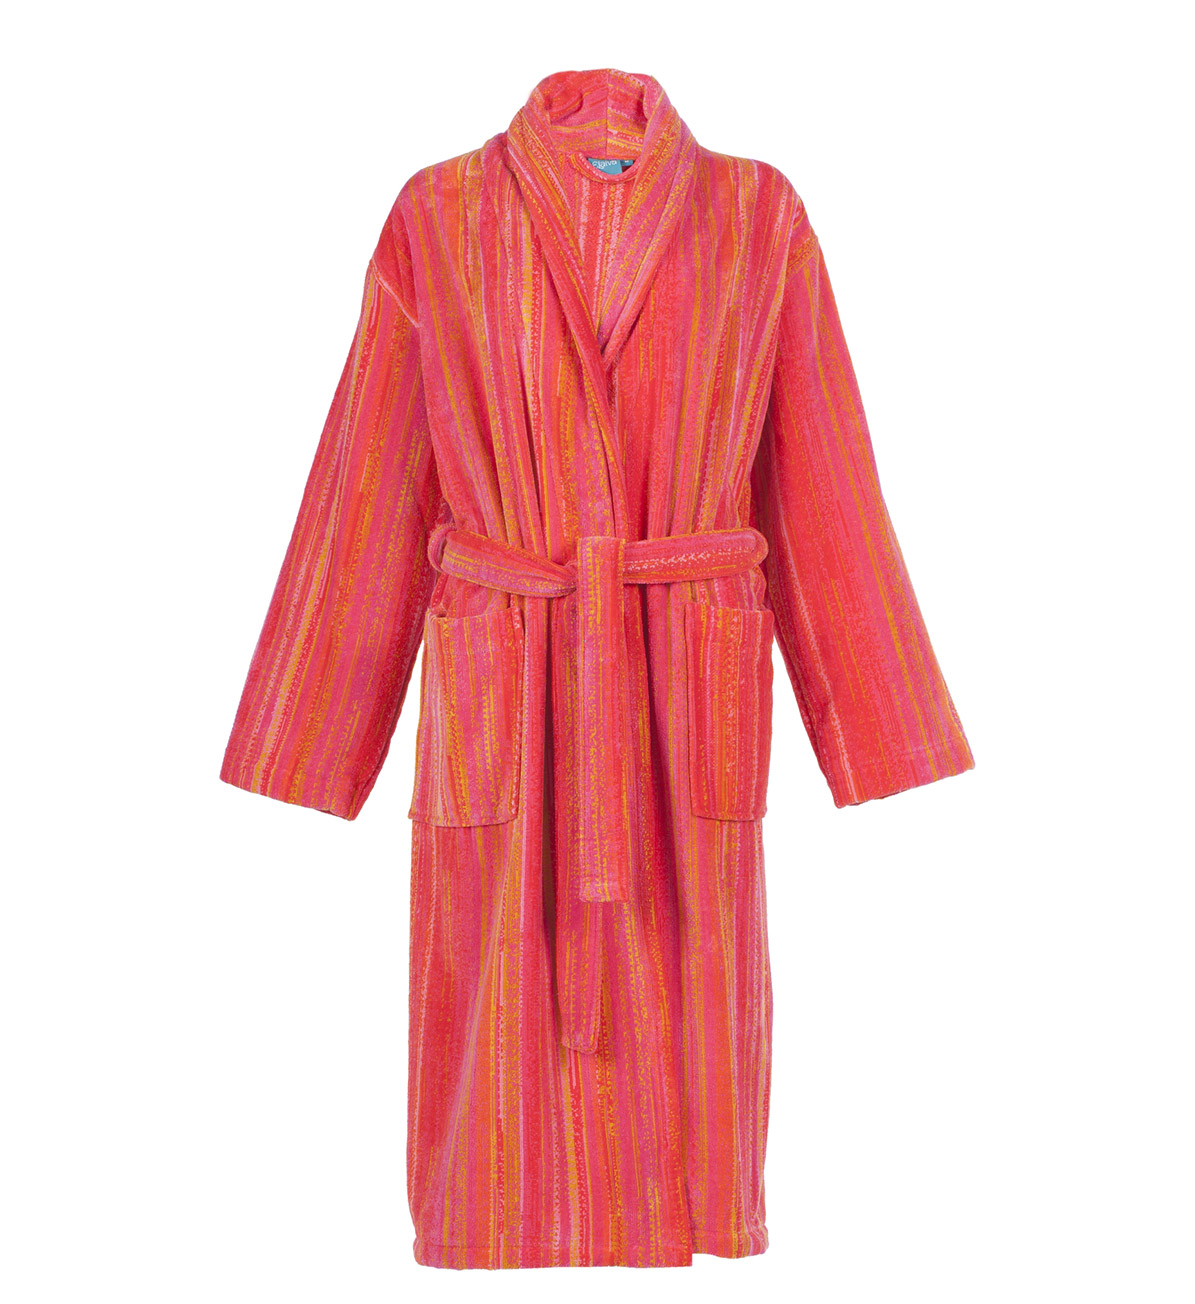 Orange Shadows Collar Bath Robe (S)